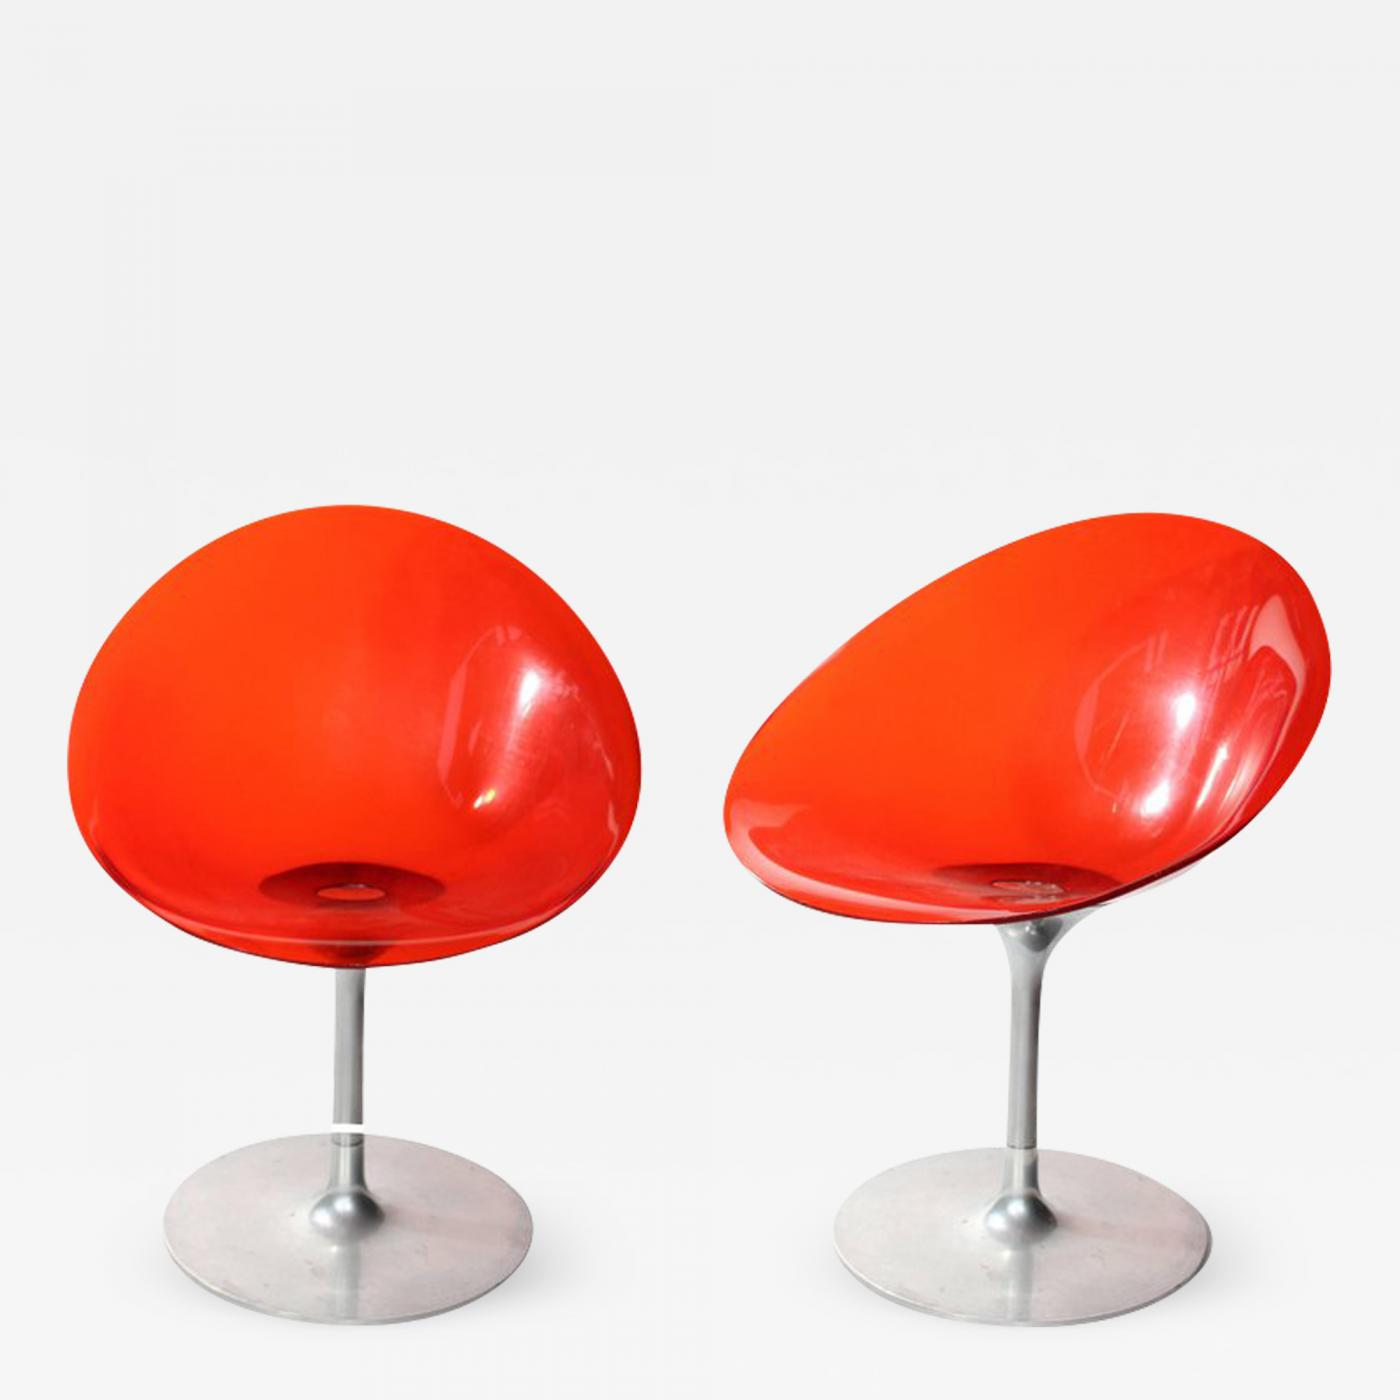 Listings / Furniture / Seating / Office Chairs · Philippe Starck ...